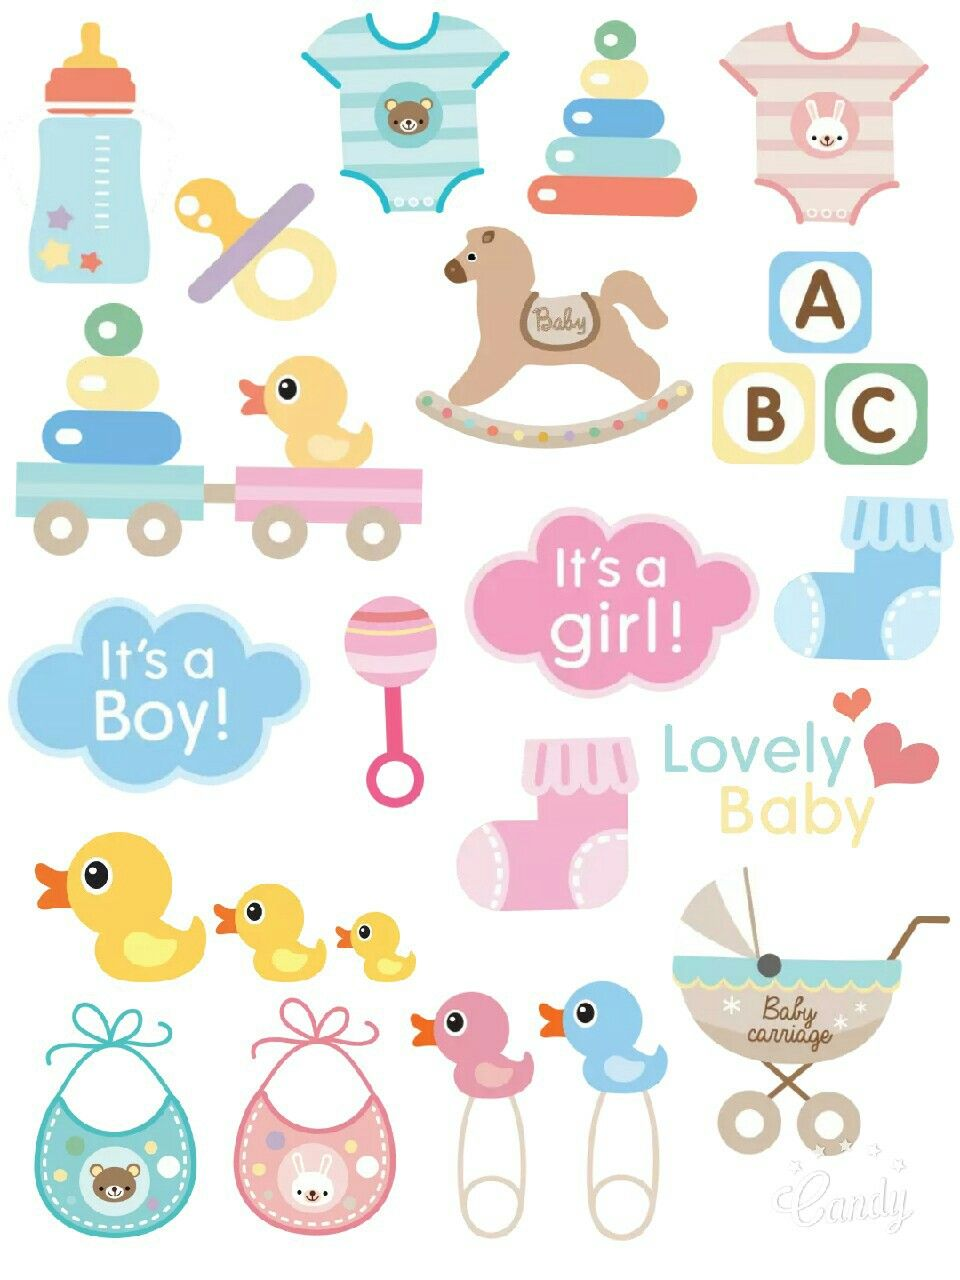 baby baby sticker printable pintables pinterest